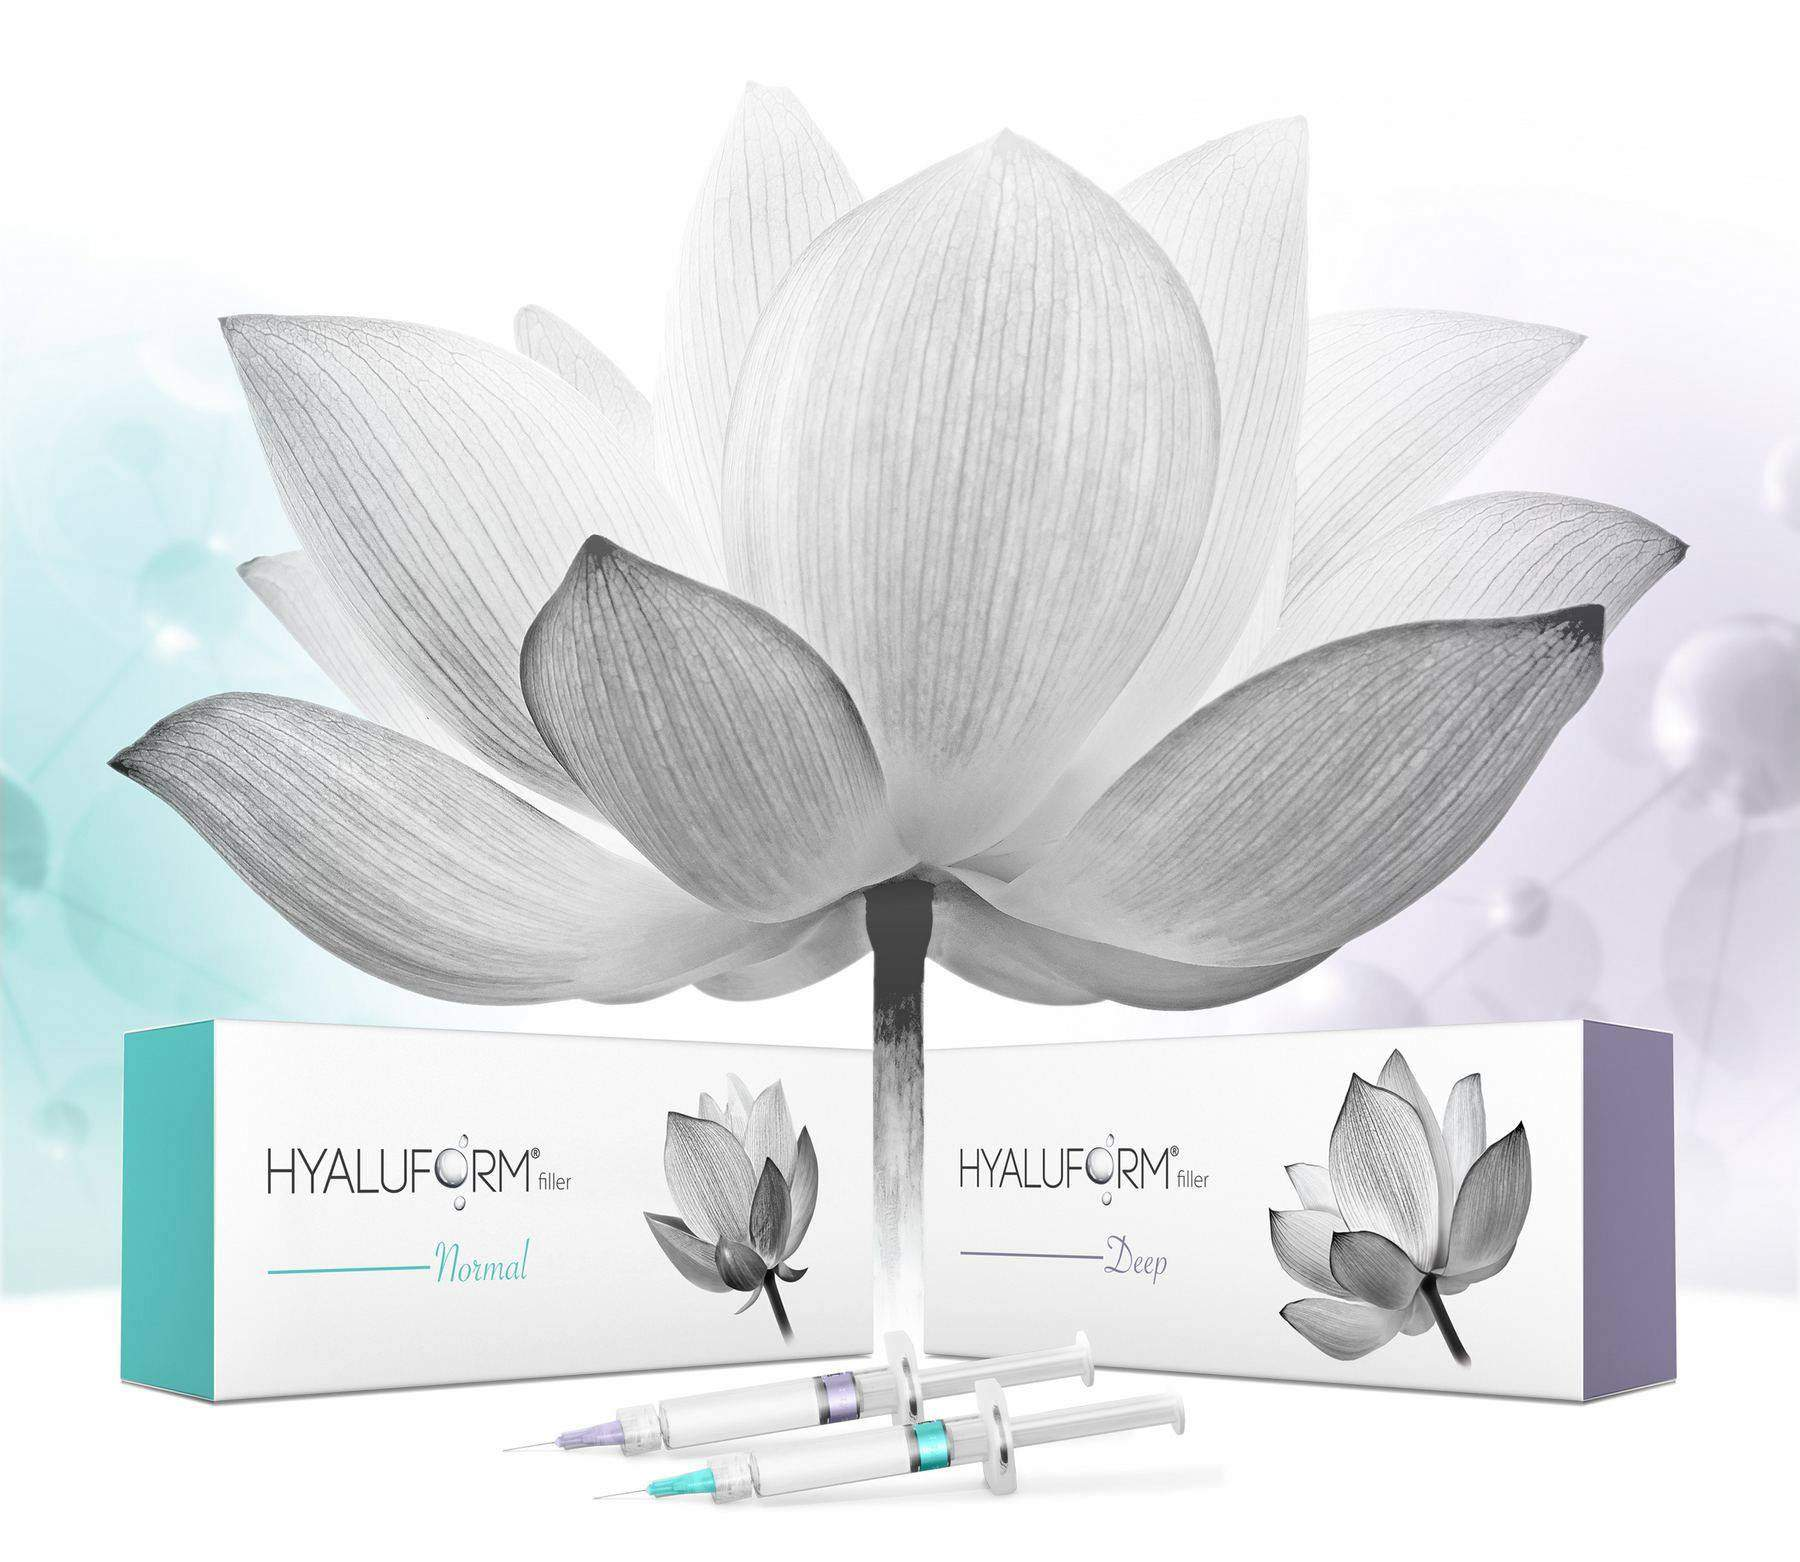 Hyaluform filler package design portfolio